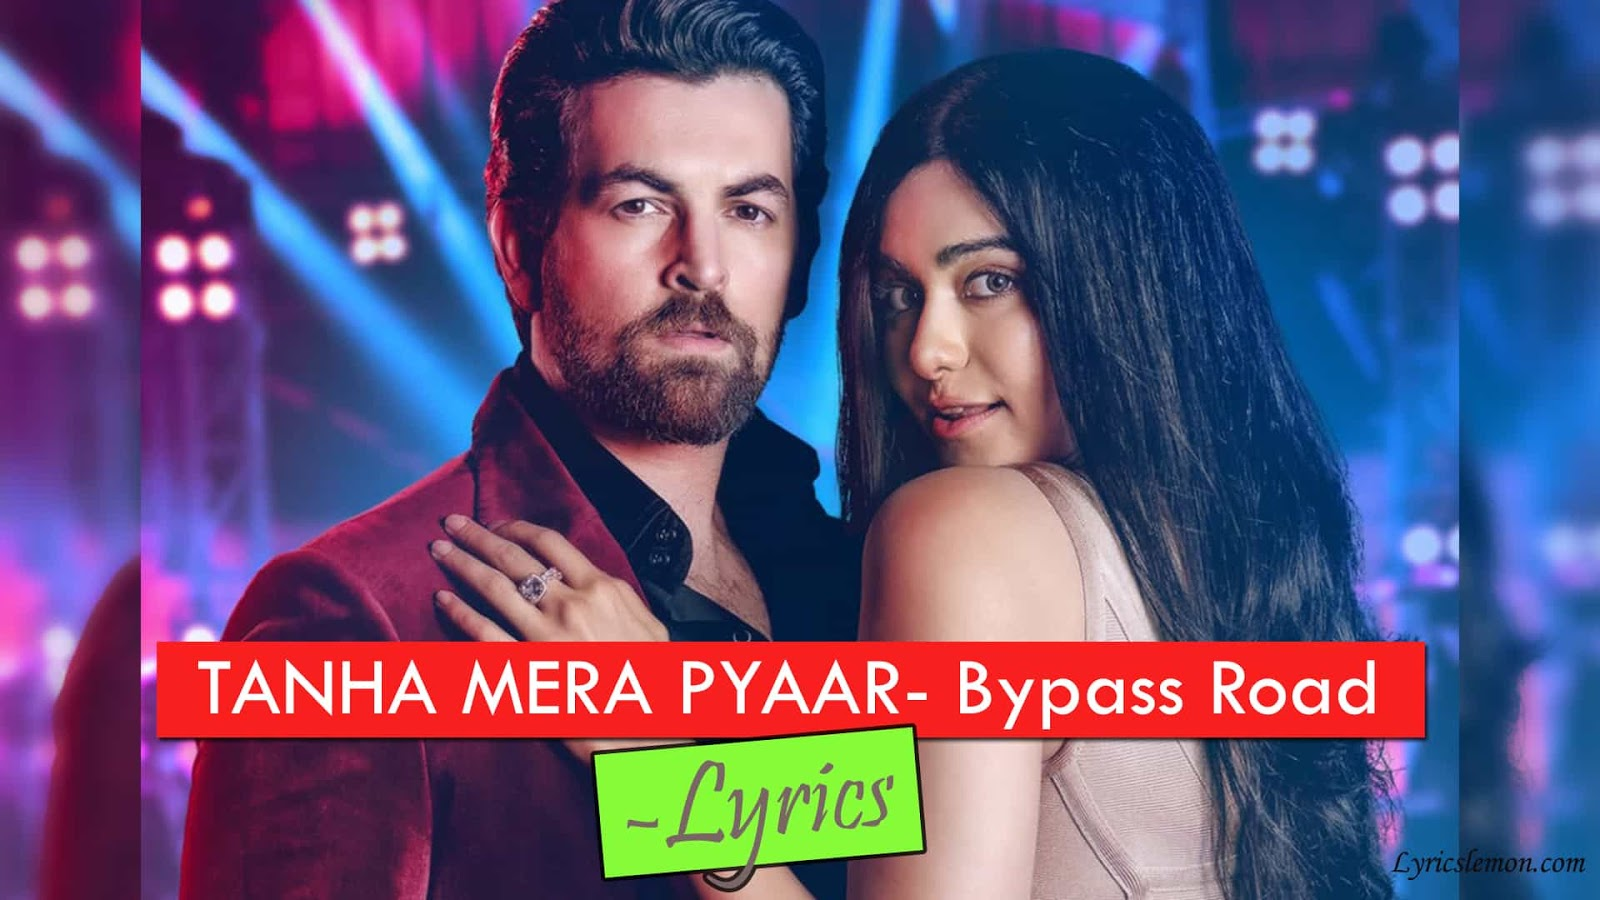 TANHA MERA PYAAR LYRICS – Bypass Road | Loverslyrics